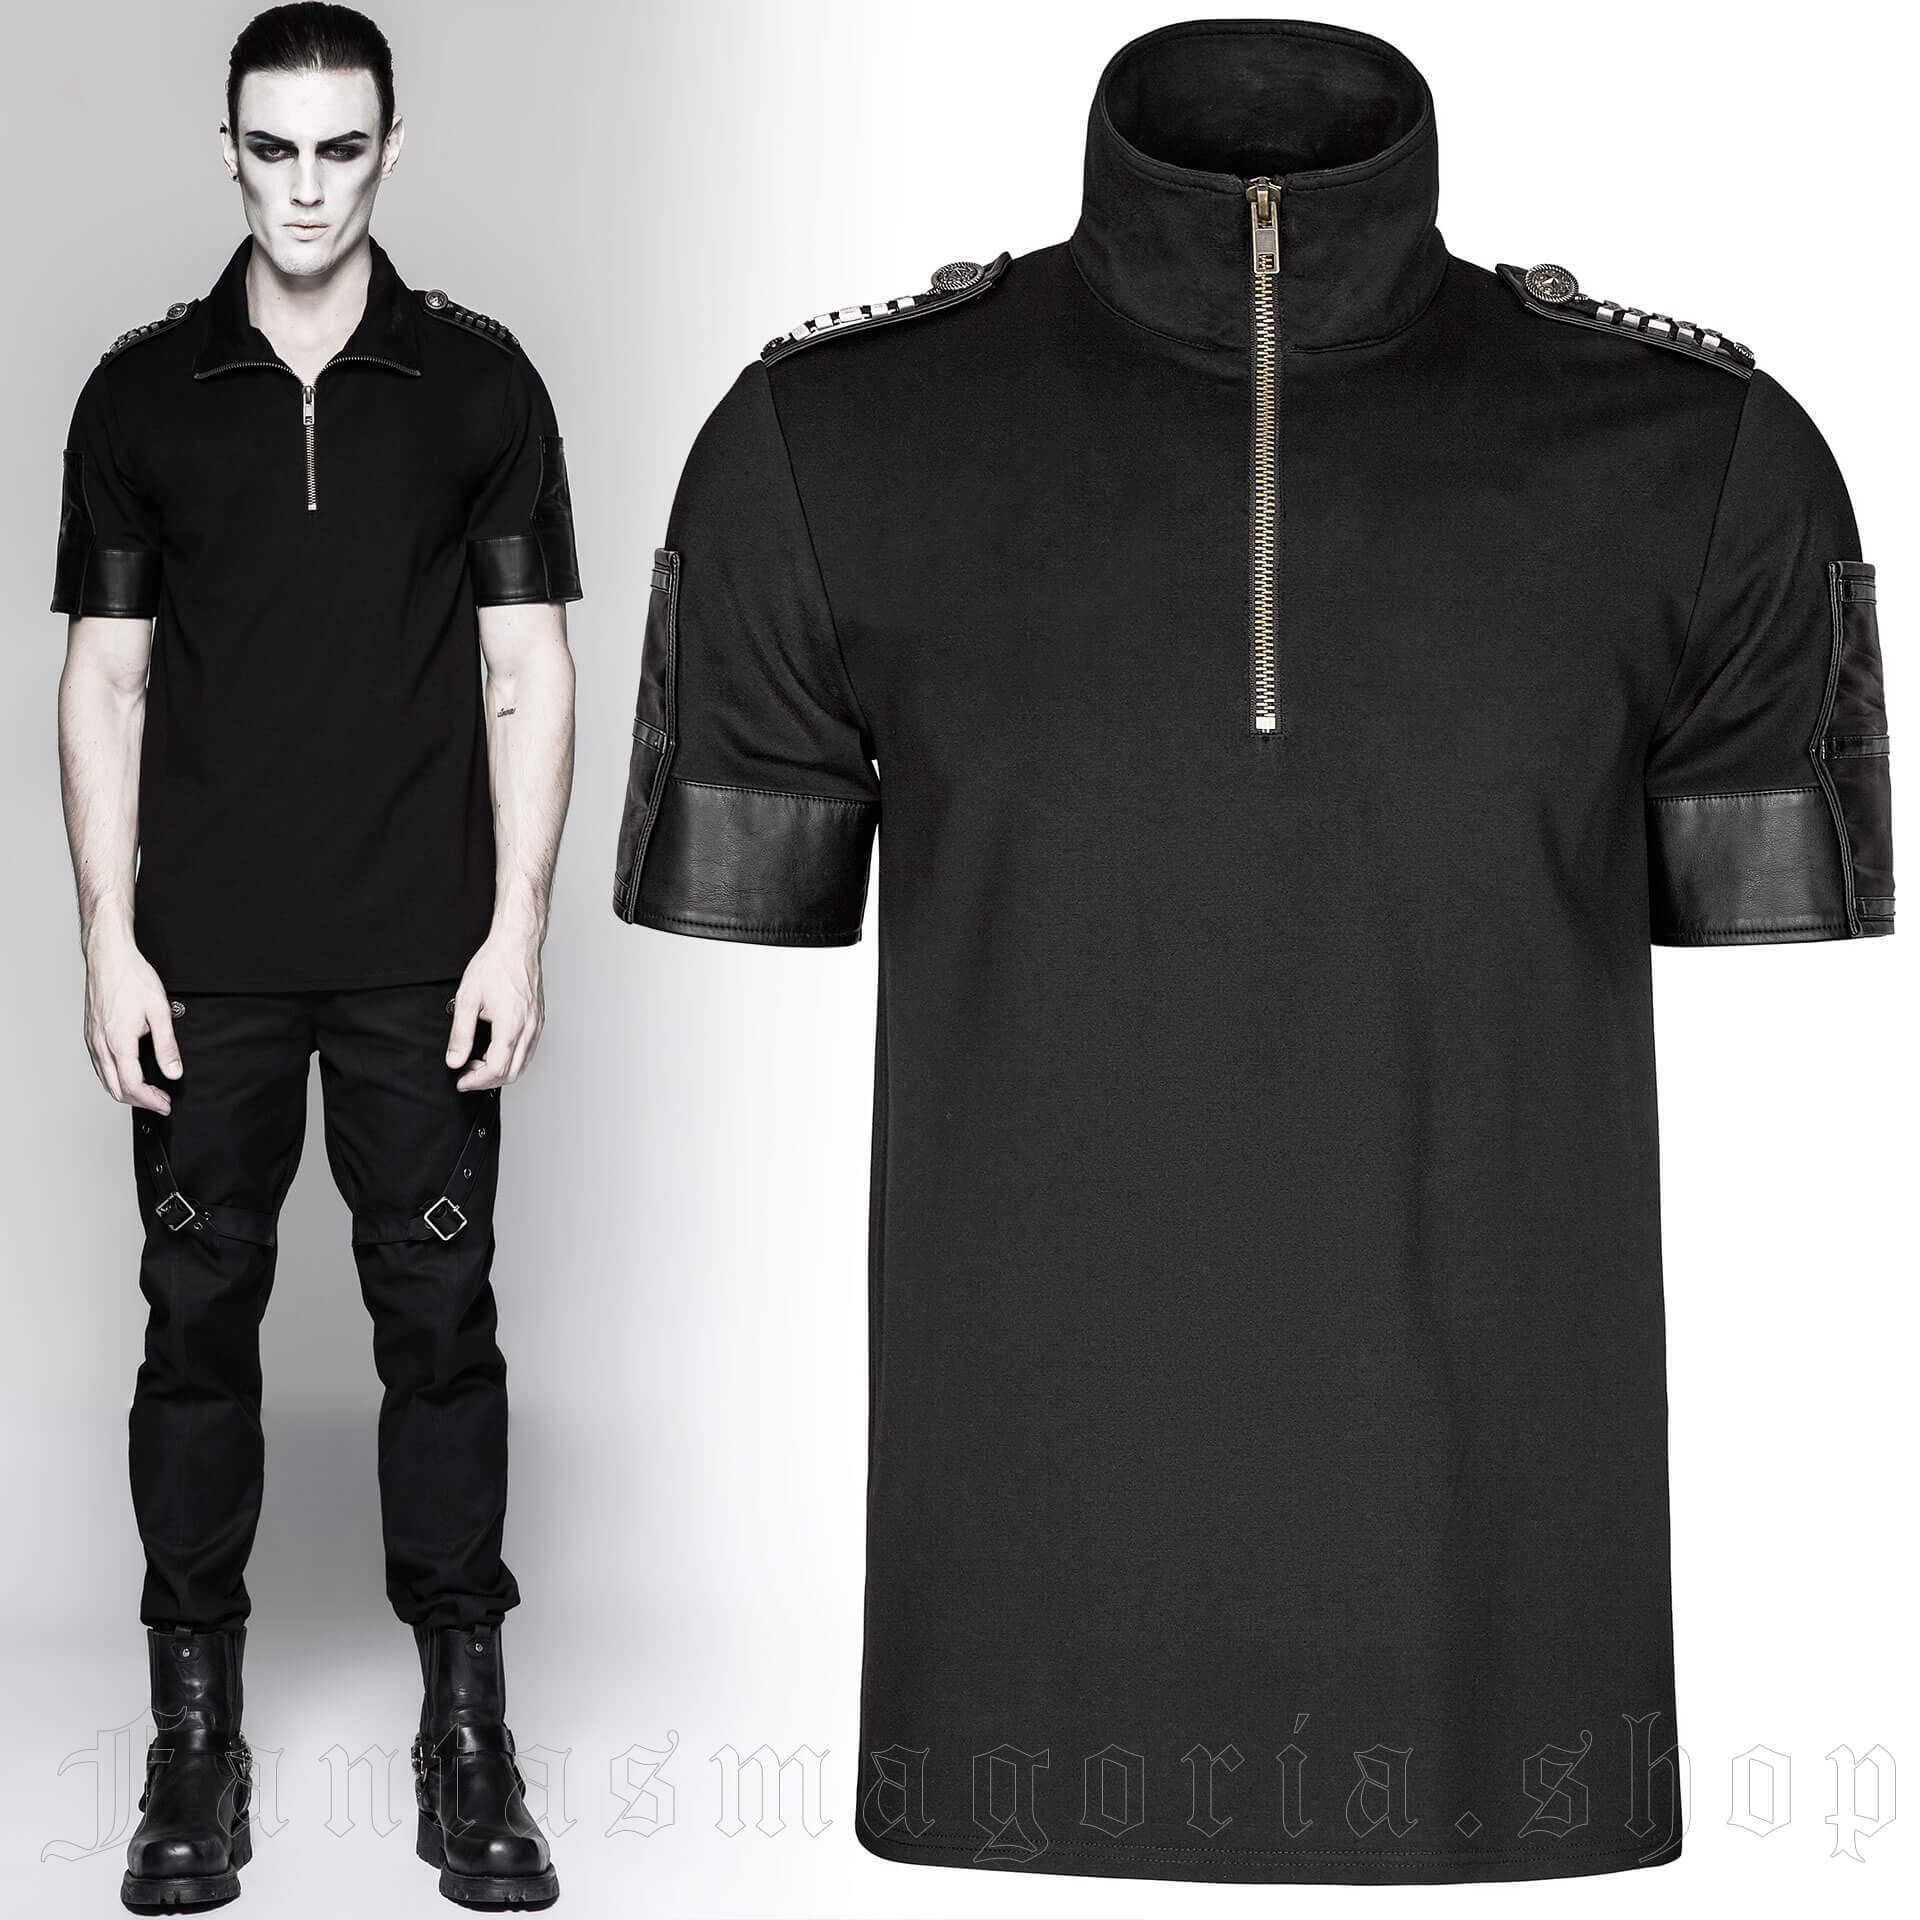 men's Mister Sinister Top by PUNK RAVE brand, code: T-459